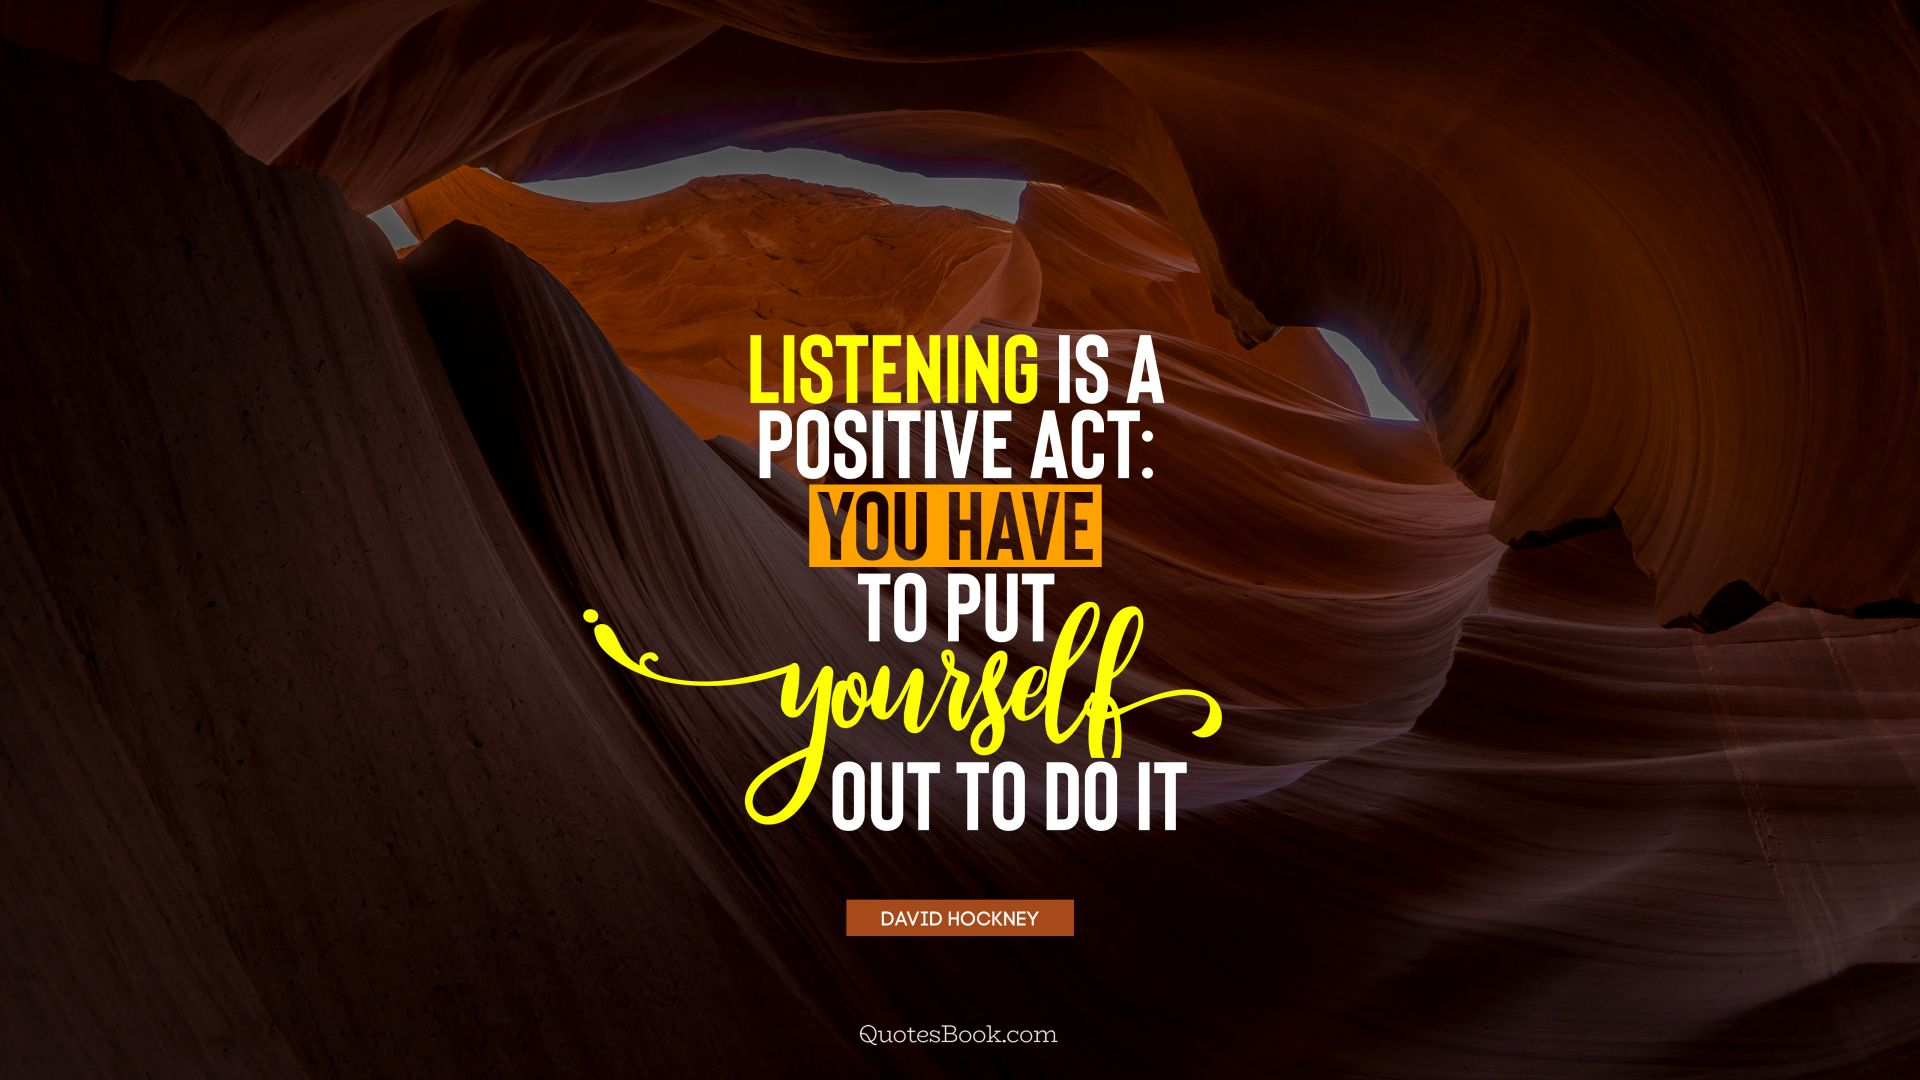 Listening is a positive act: you have to put yourself out to do it. - Quote by David Hockney